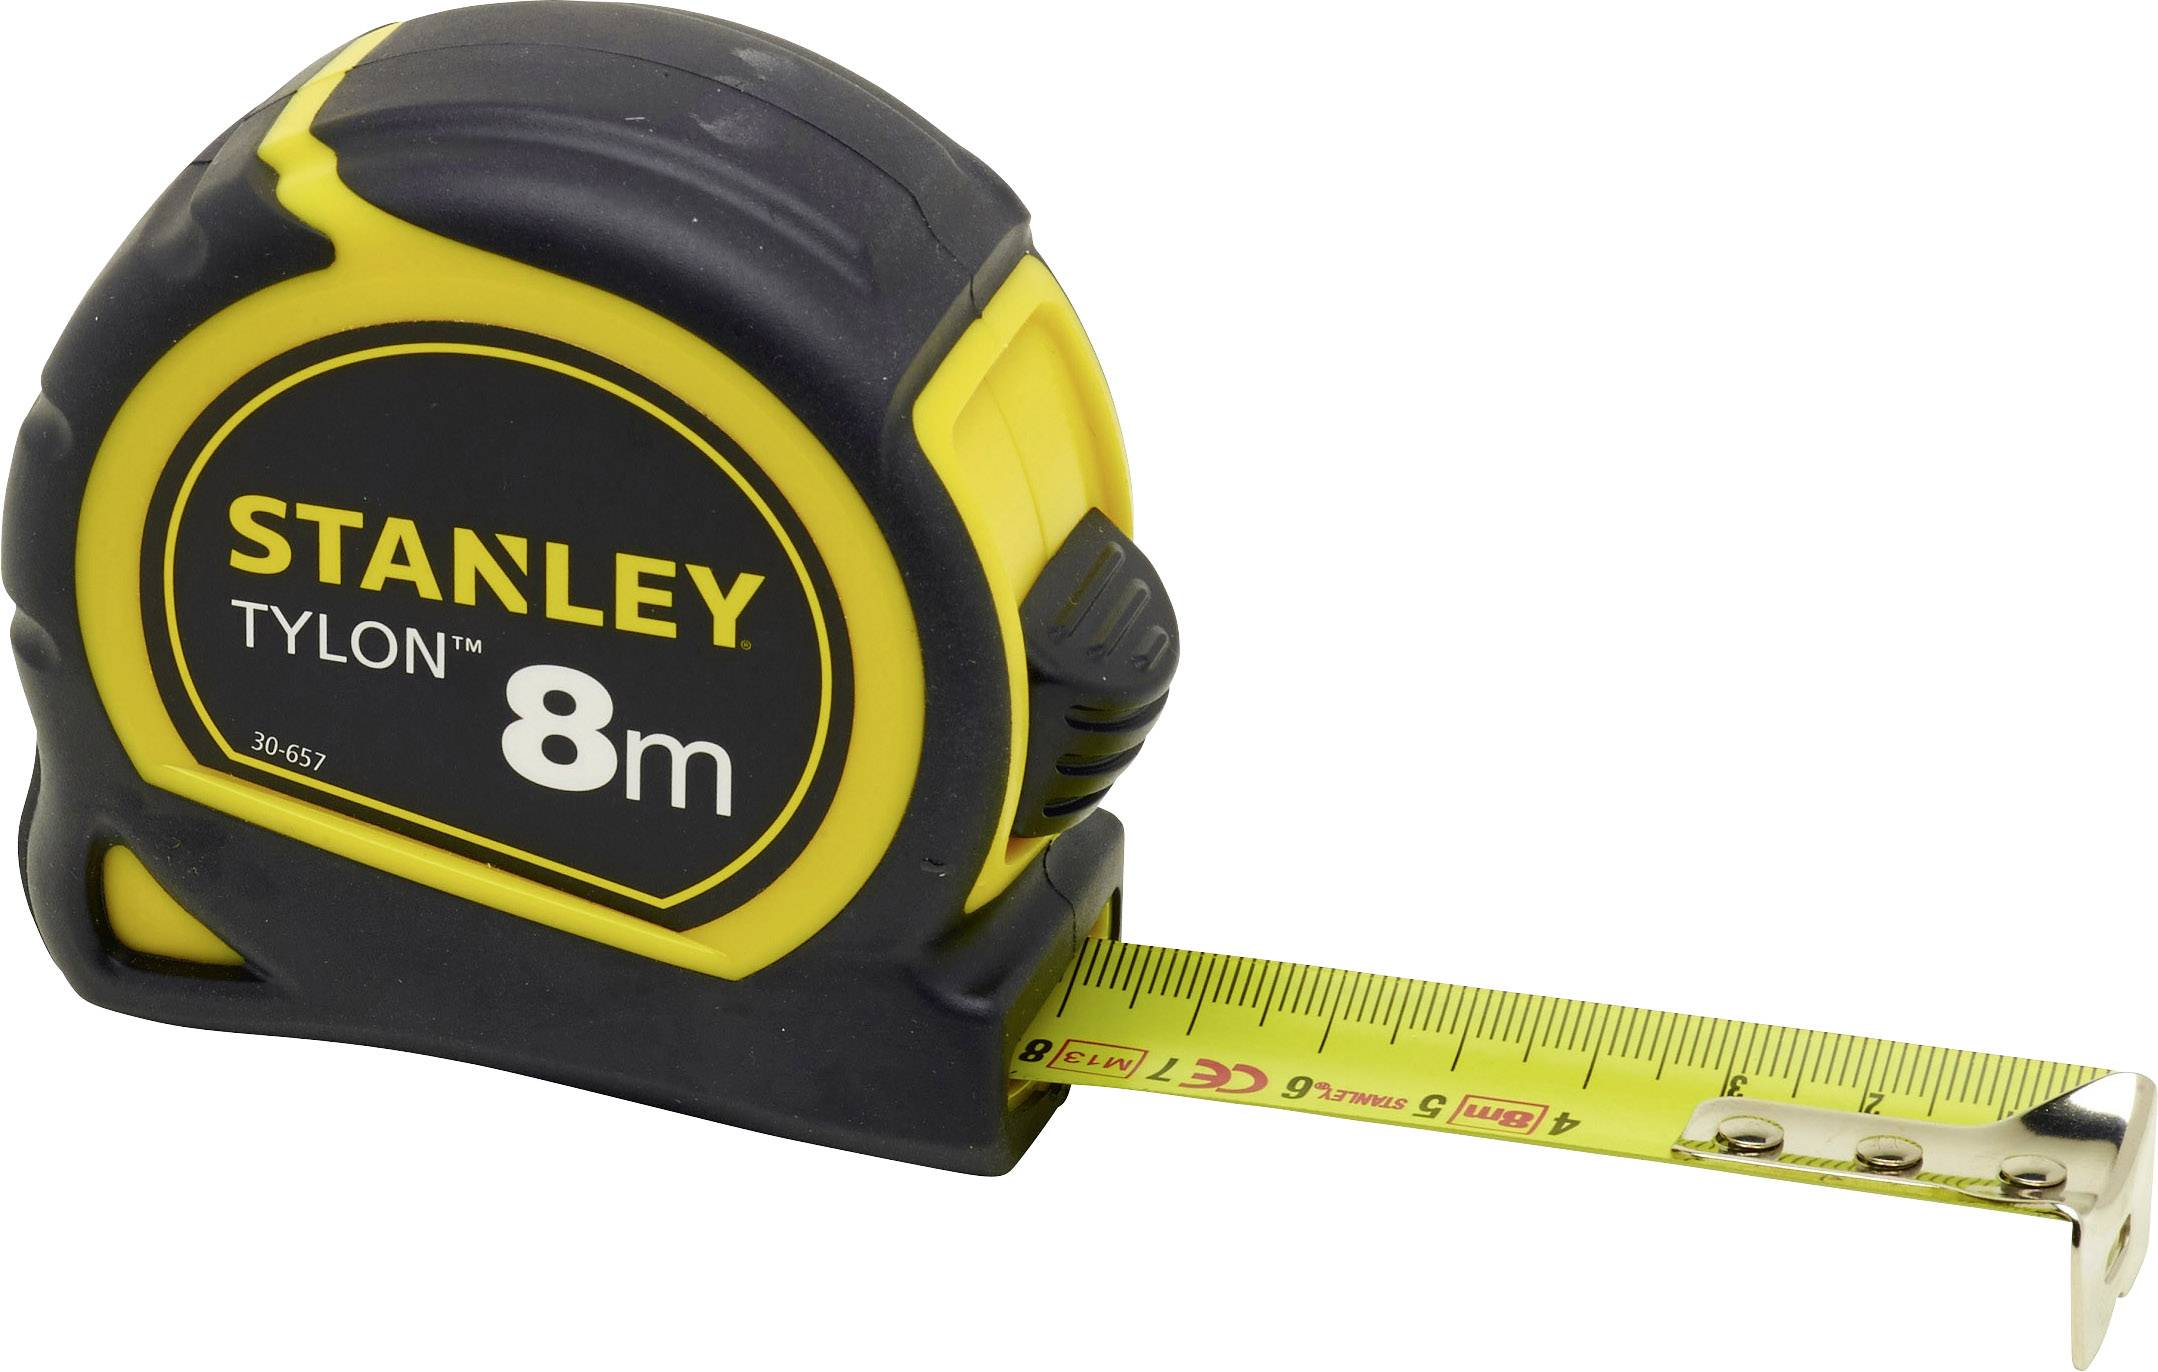 Svinovací metr 8 m Stanley by Black & Decker Tylon 1-30-657